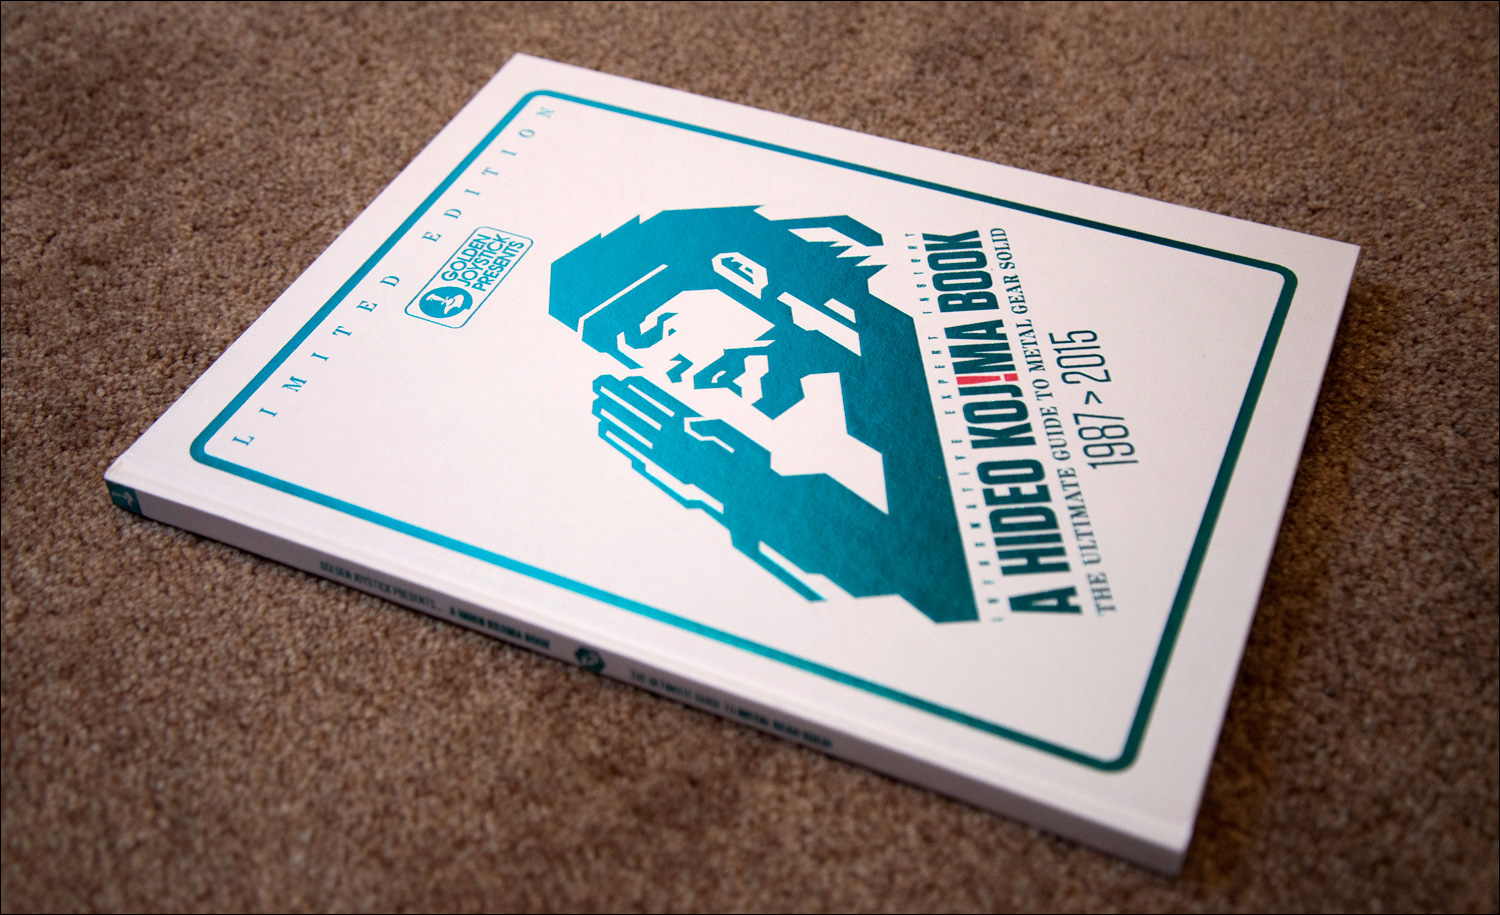 A-Hideo-Kojima-Book-Limited-Edition